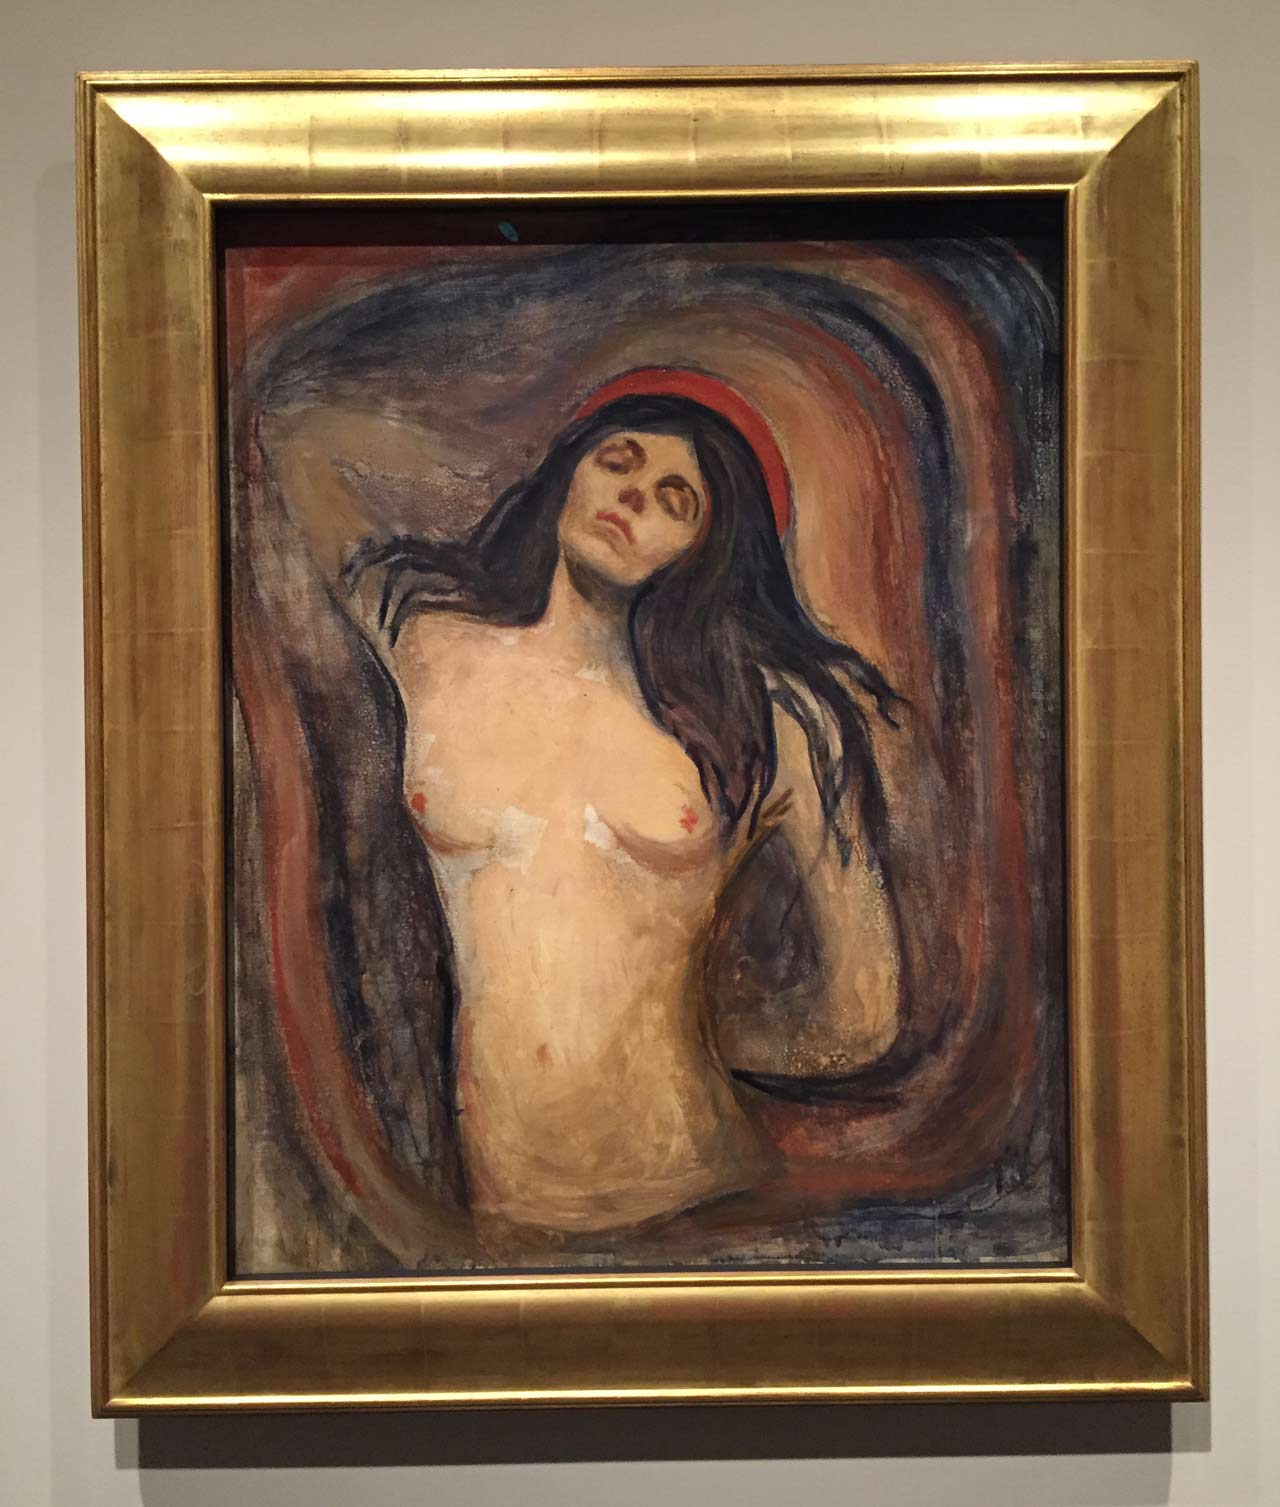 Edvard-Munch-Madonna-1895-97-Private-collection.jpg